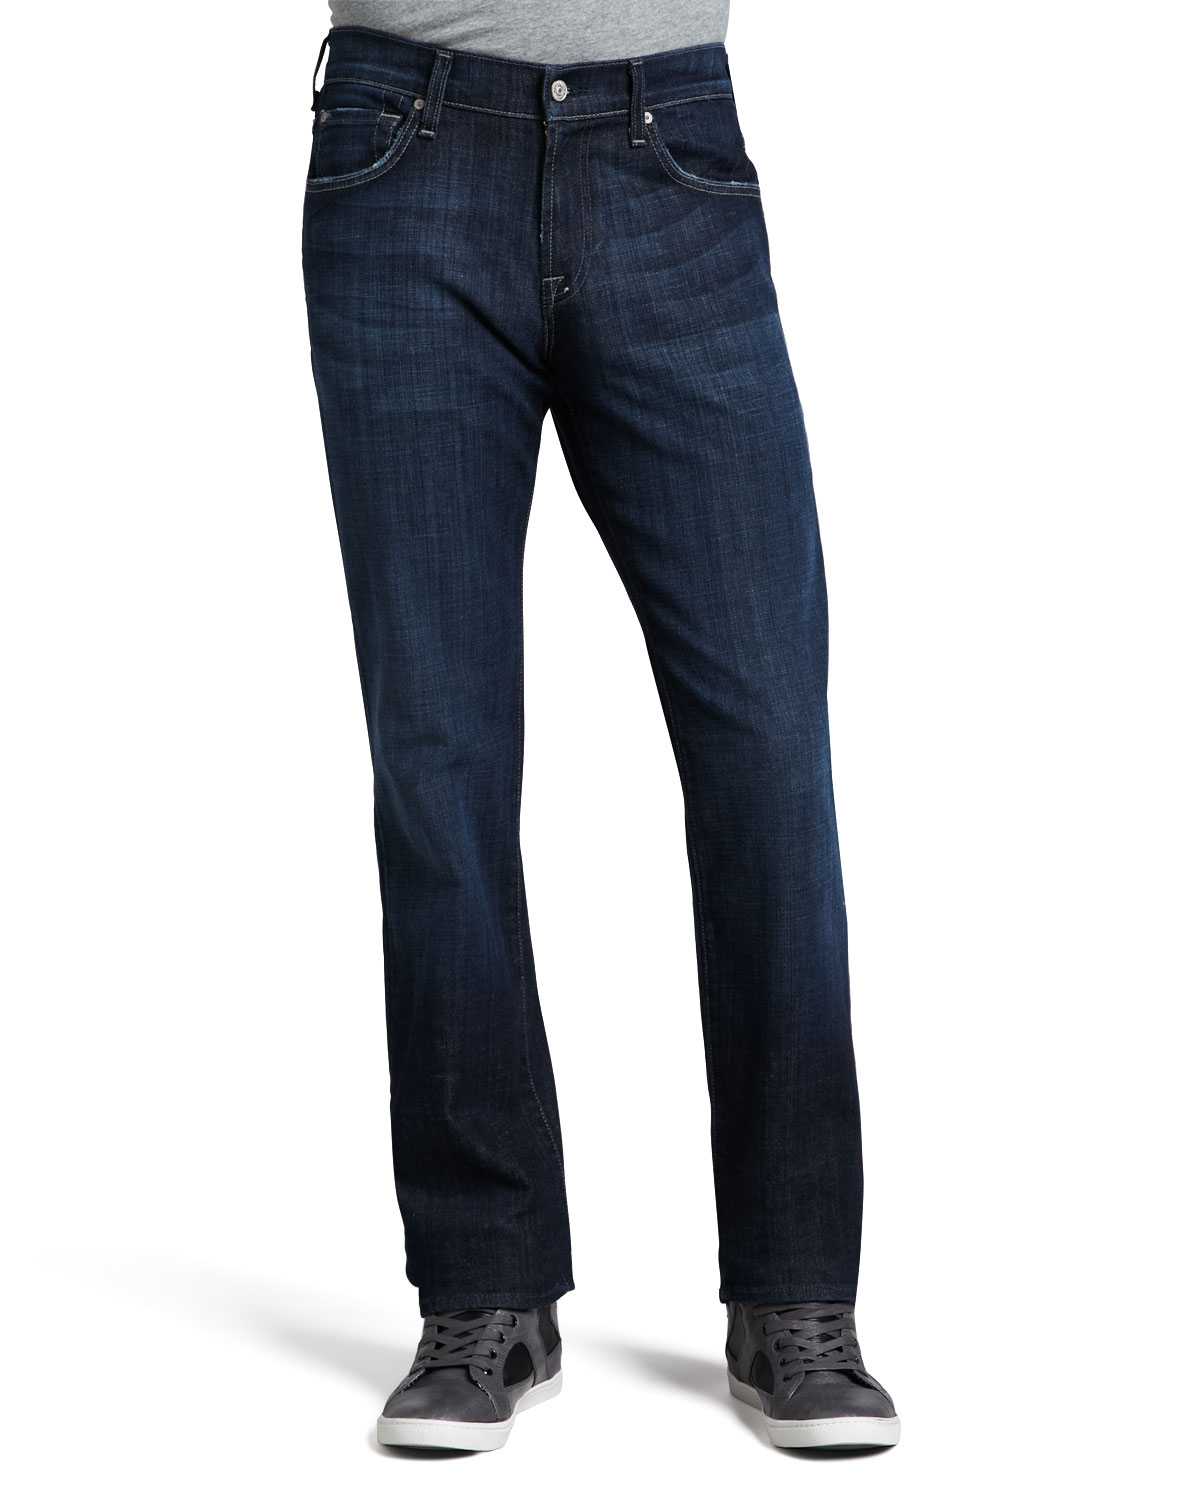 Men's Austyn Los Angeles Dark Jeans, 36